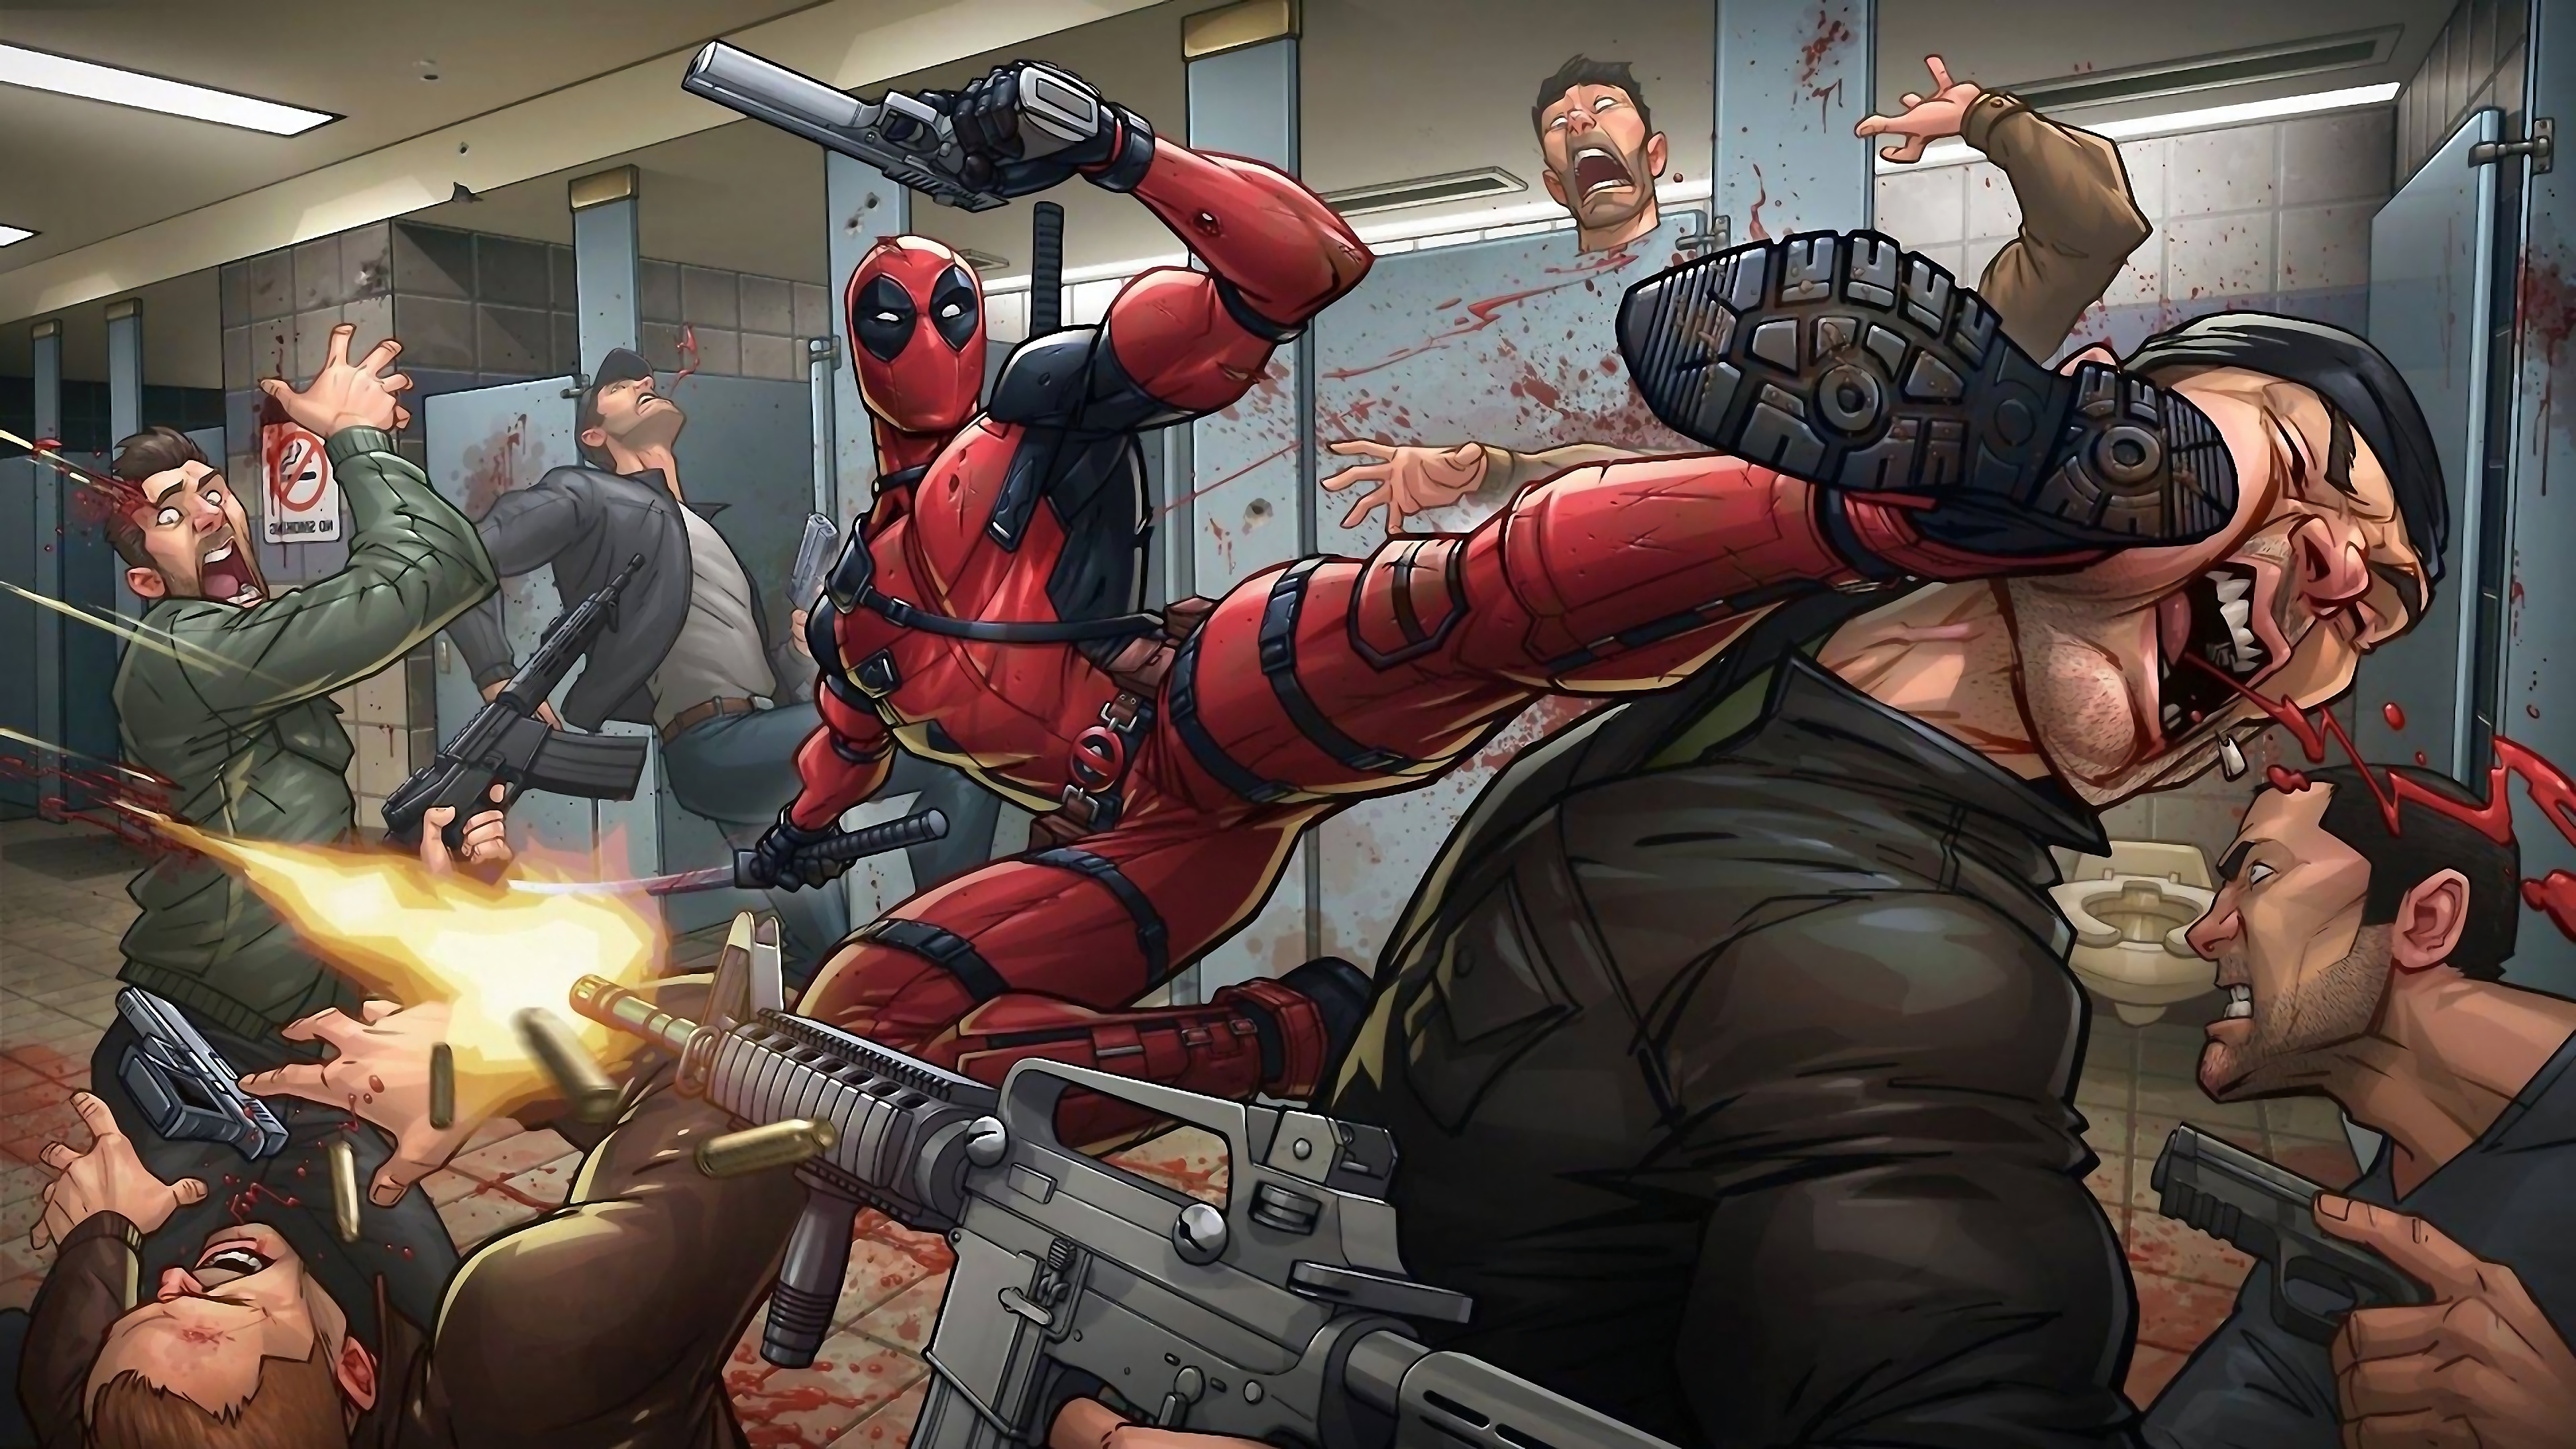 Wallpaper 4k Deadpool Fighting Marvel Comics 4k Wallpaper